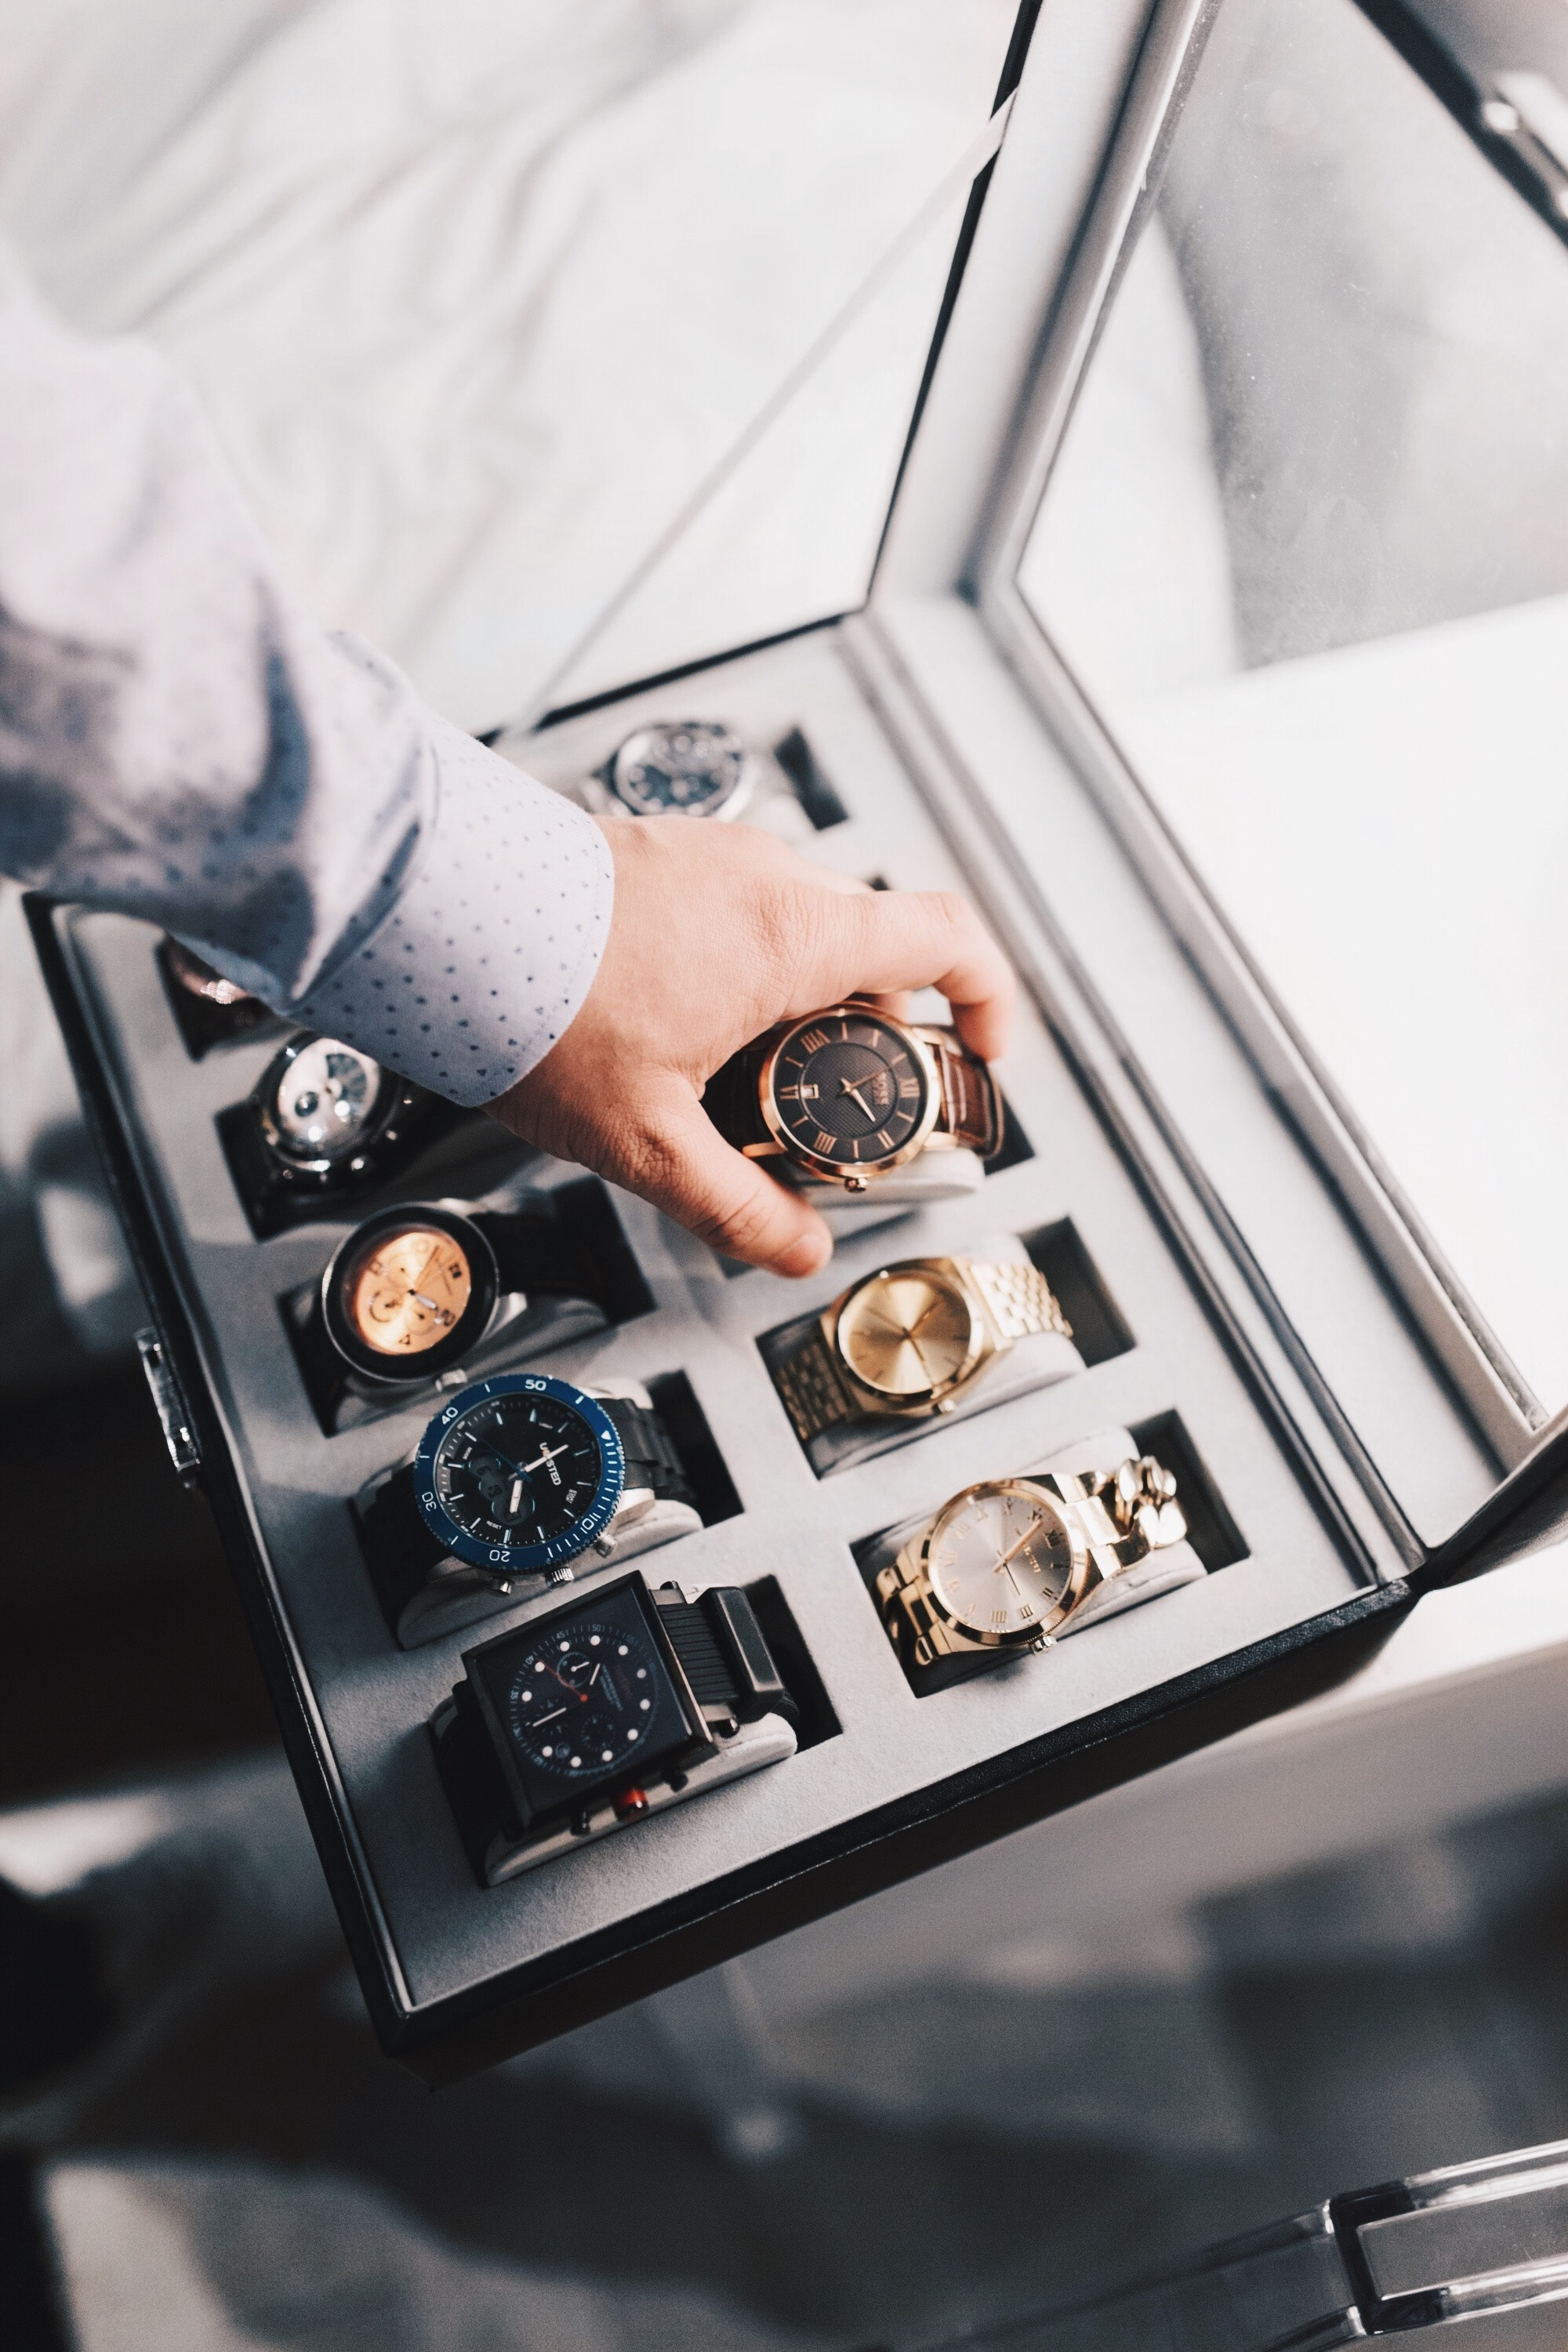 A box of Watches. AND, SWIPE RIGHT's Service: Dating Profile Styling. We Style you, we take your pictures, and we write your dating profile bio. A styling agency for dating profiles #TheDatingProfileStylist